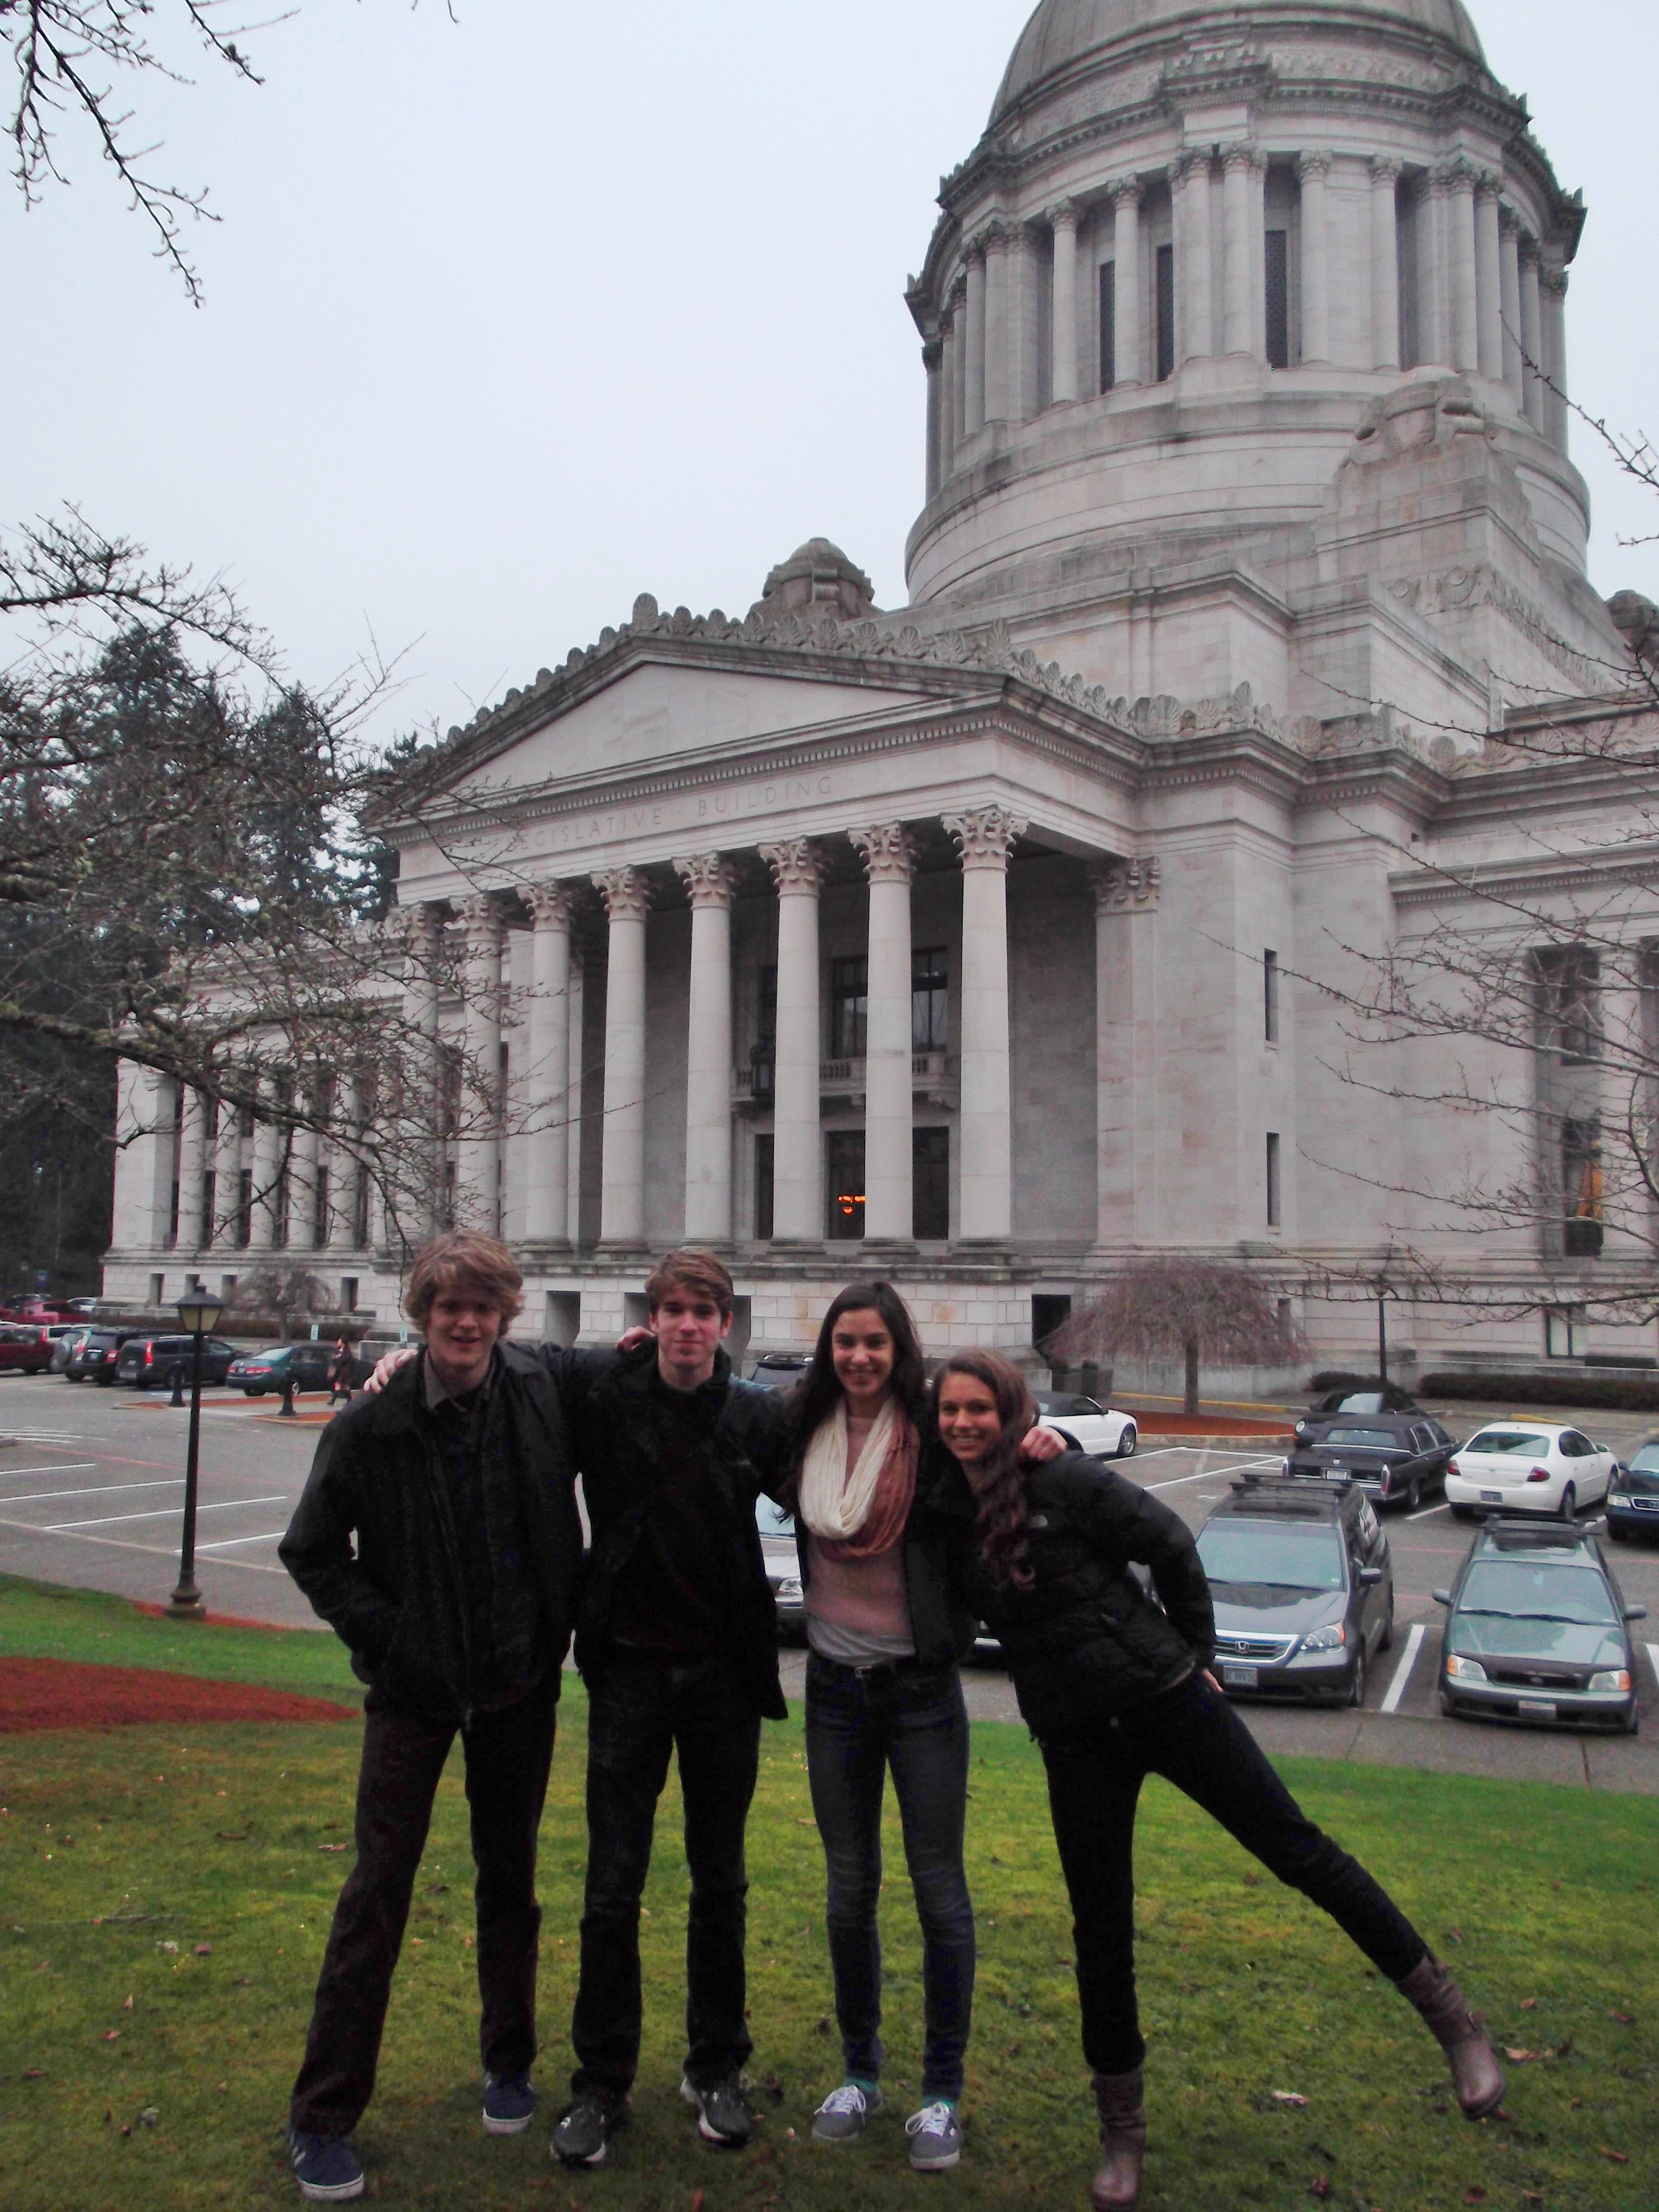 part of the Hales H.S. crew in Olympia l to r: Robert Mercer, Francis Britschgi, Naomi Price-Lazarus and Jasmine Shirey. Photo by Anthony Bencivengo.